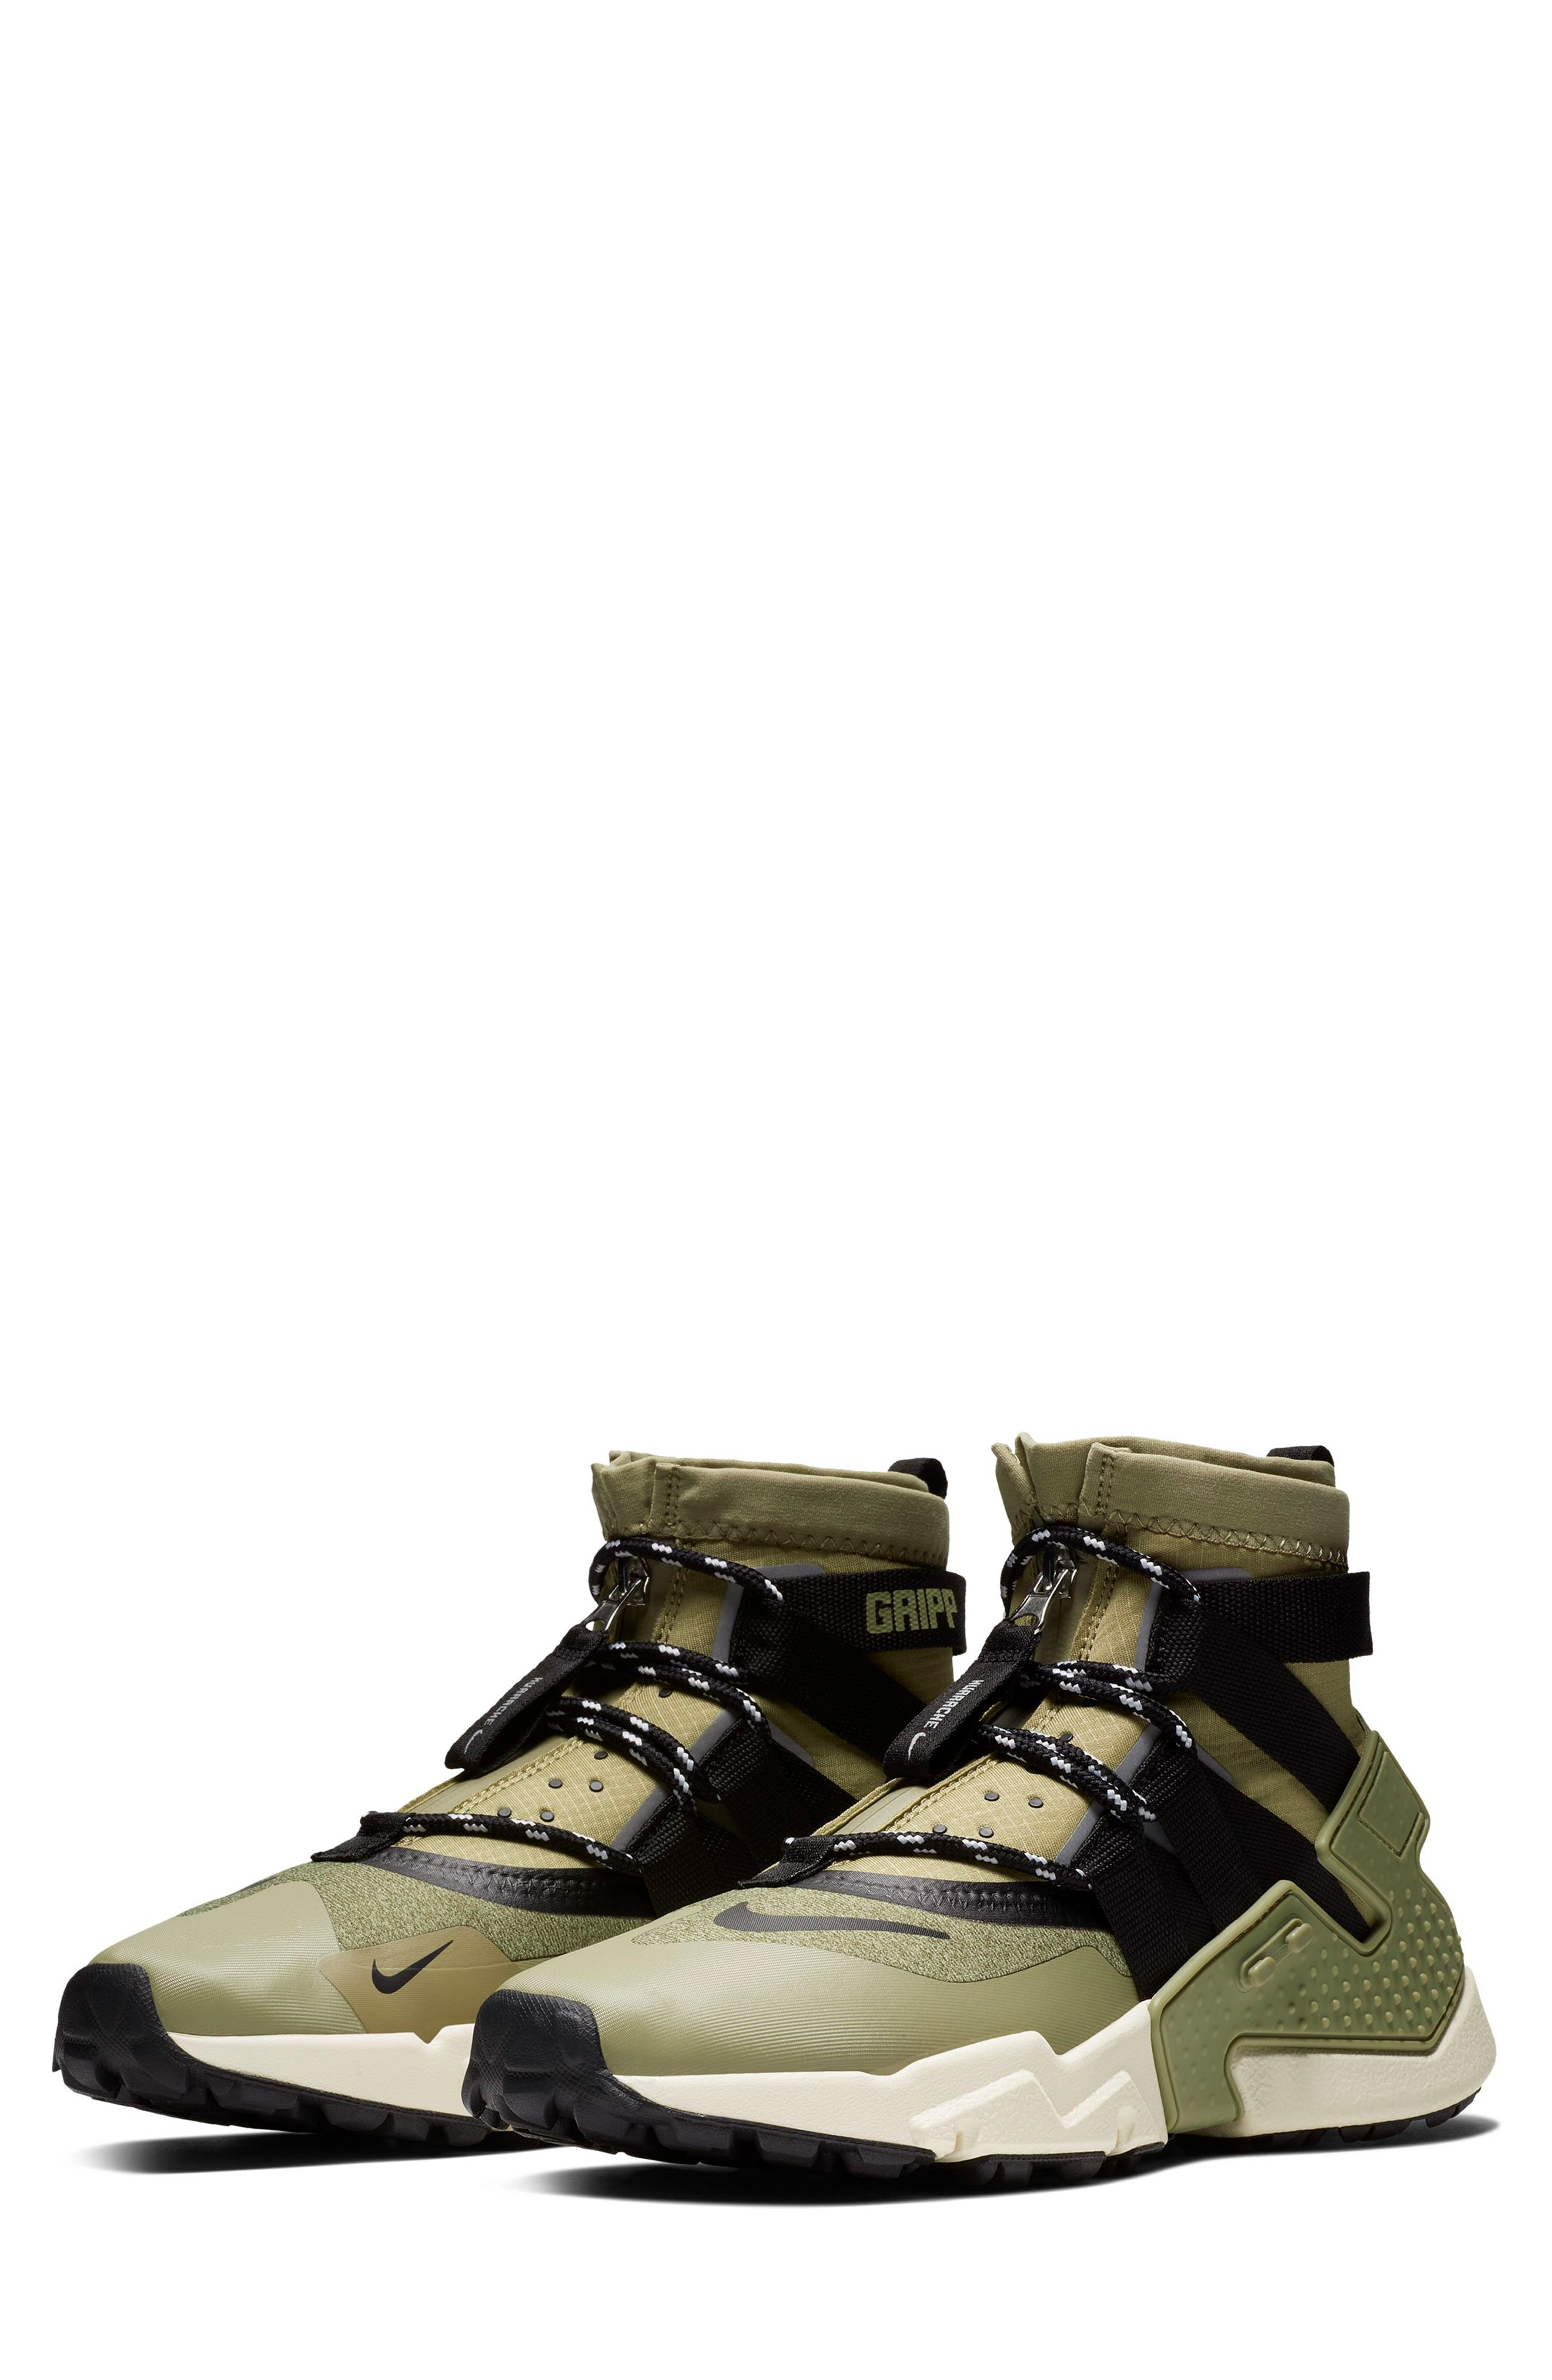 huge selection of f899e cedcb Nike Air Huarache Gripp Shield Water Repellent Sneaker In Green